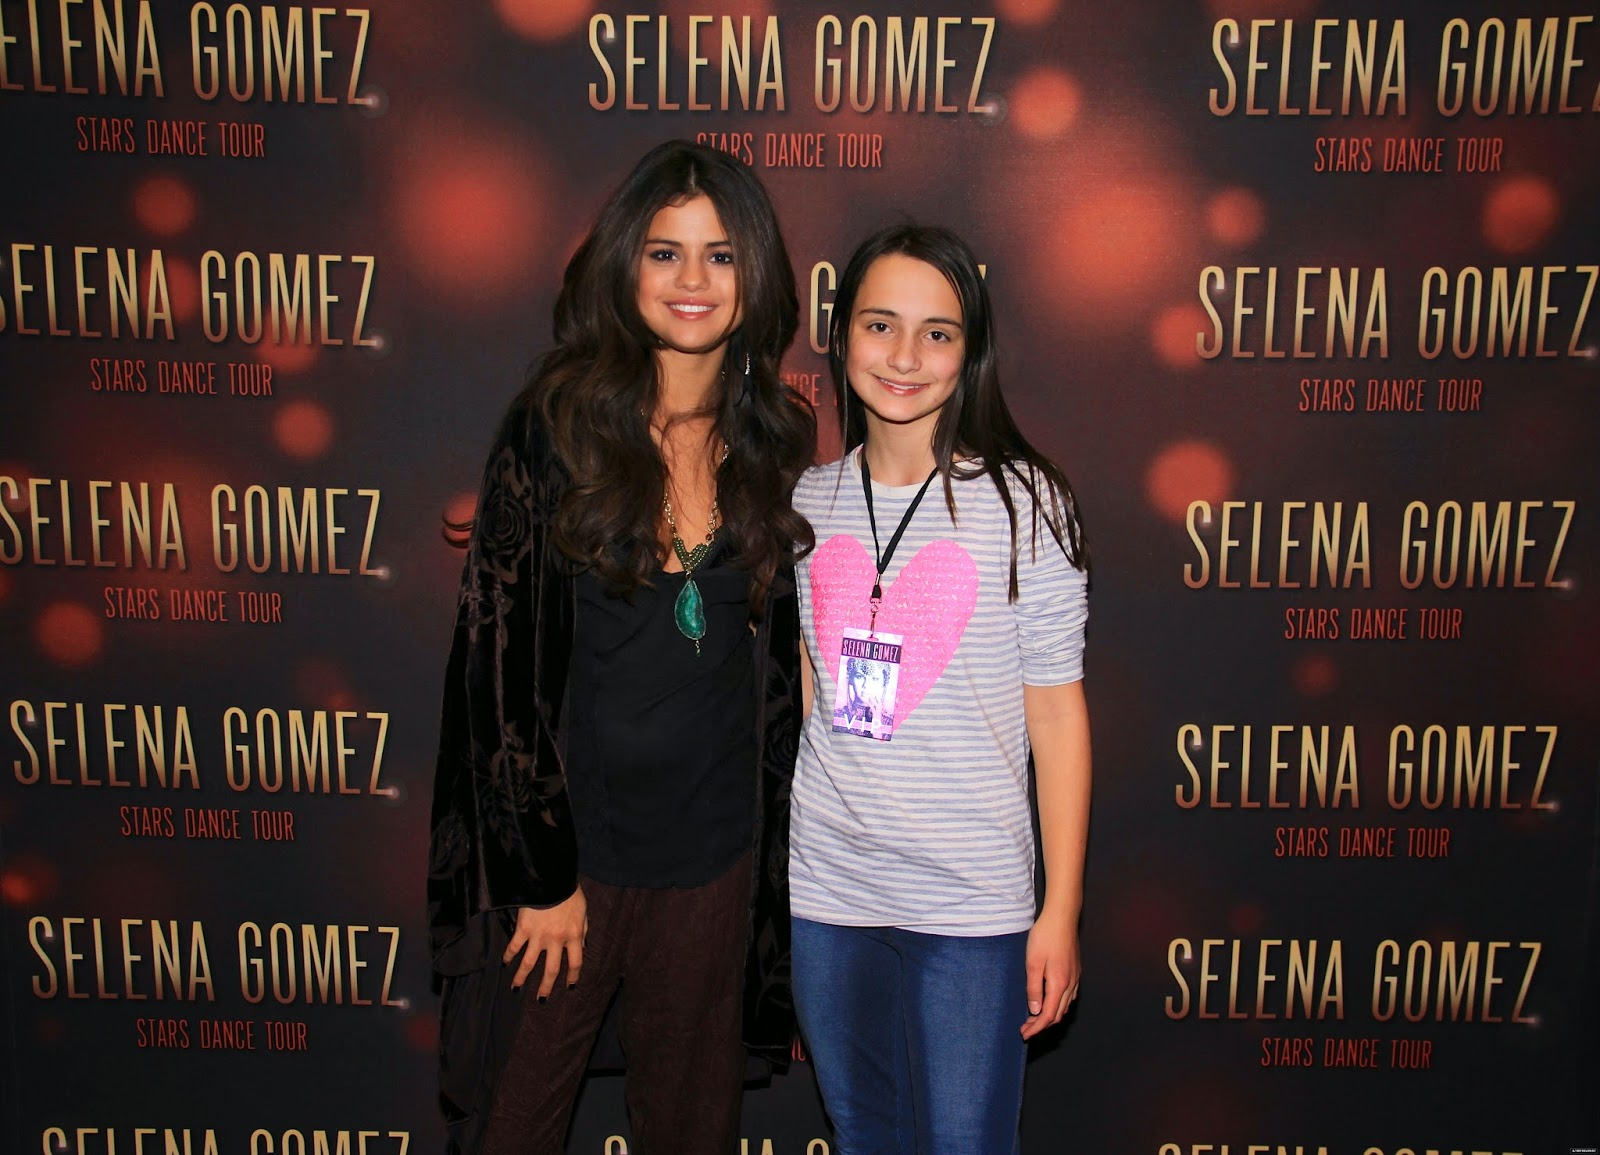 selena gomez tour 2013 meet and greet tickets